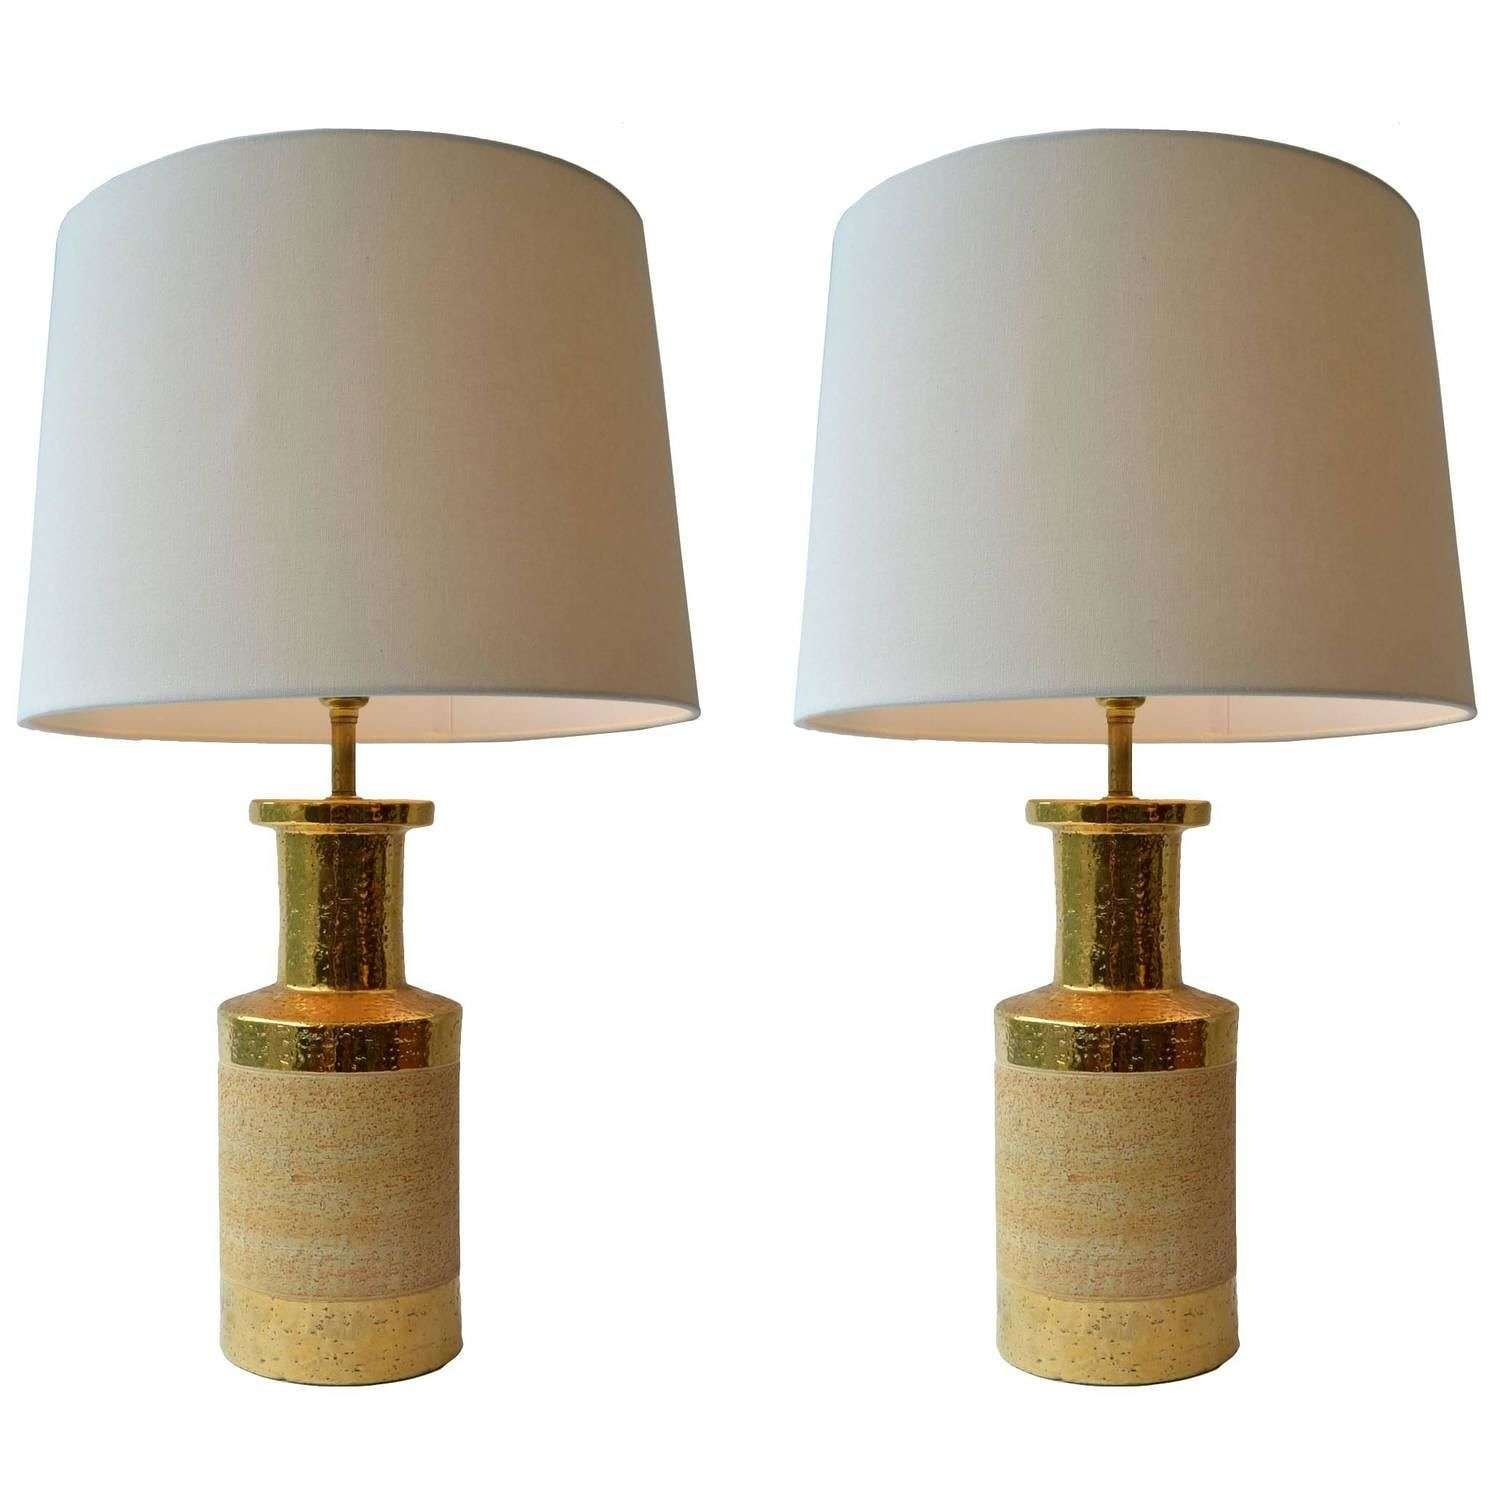 Pair of Gold and Ceramic Table Lamps by Bitossi, Italy